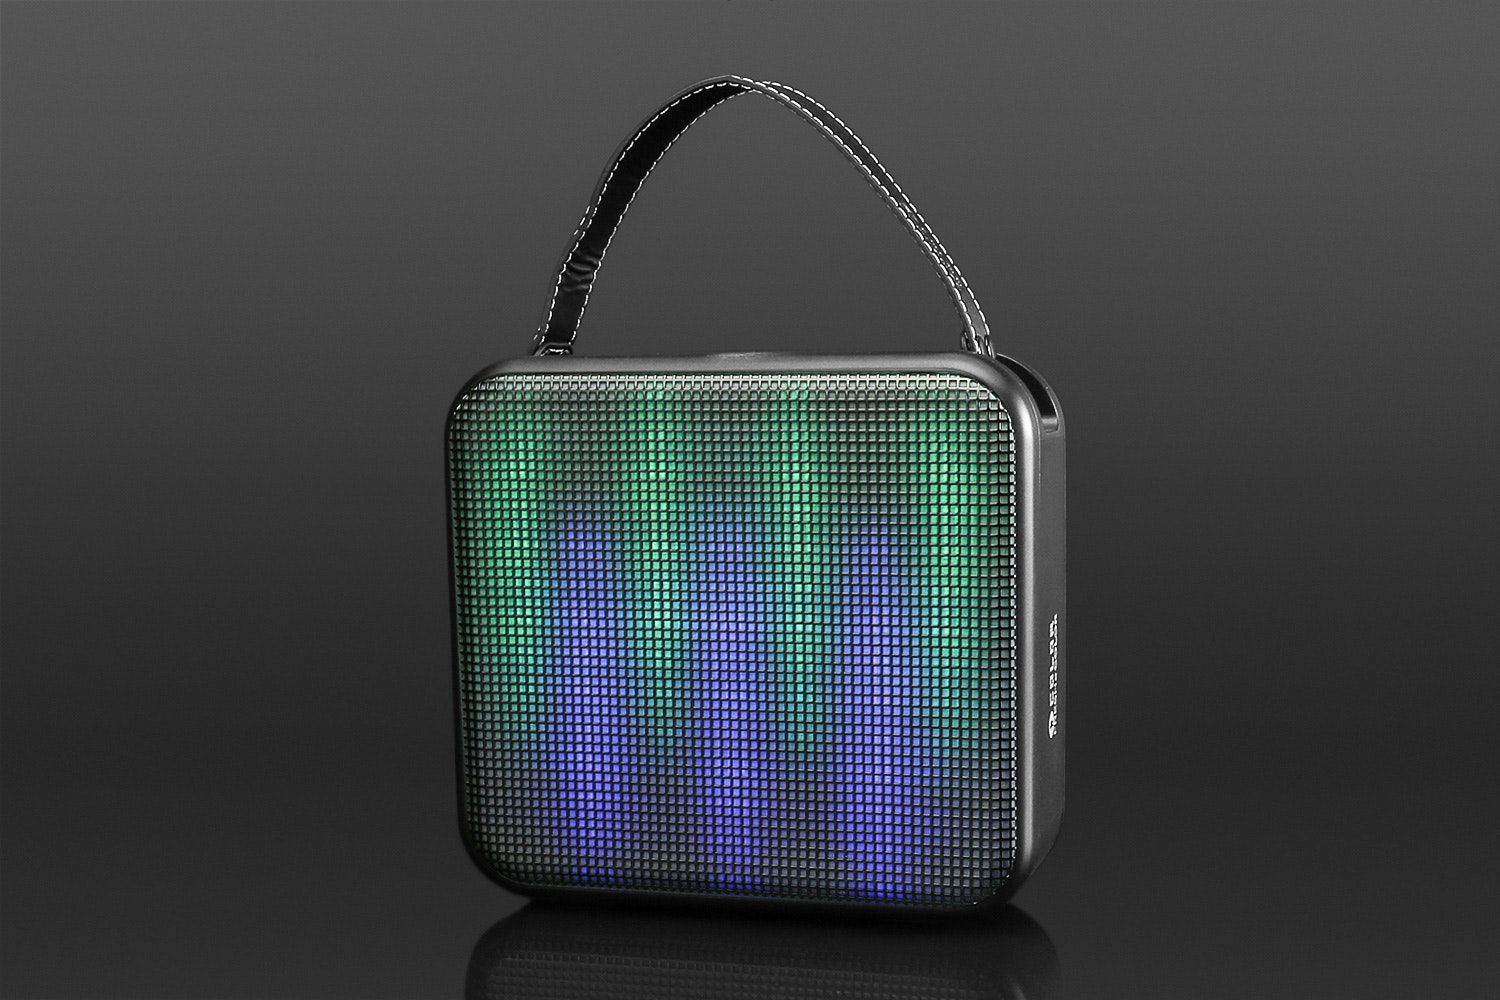 FRESHeCOLOR Portable Bluetooth Speaker w/ LEDs